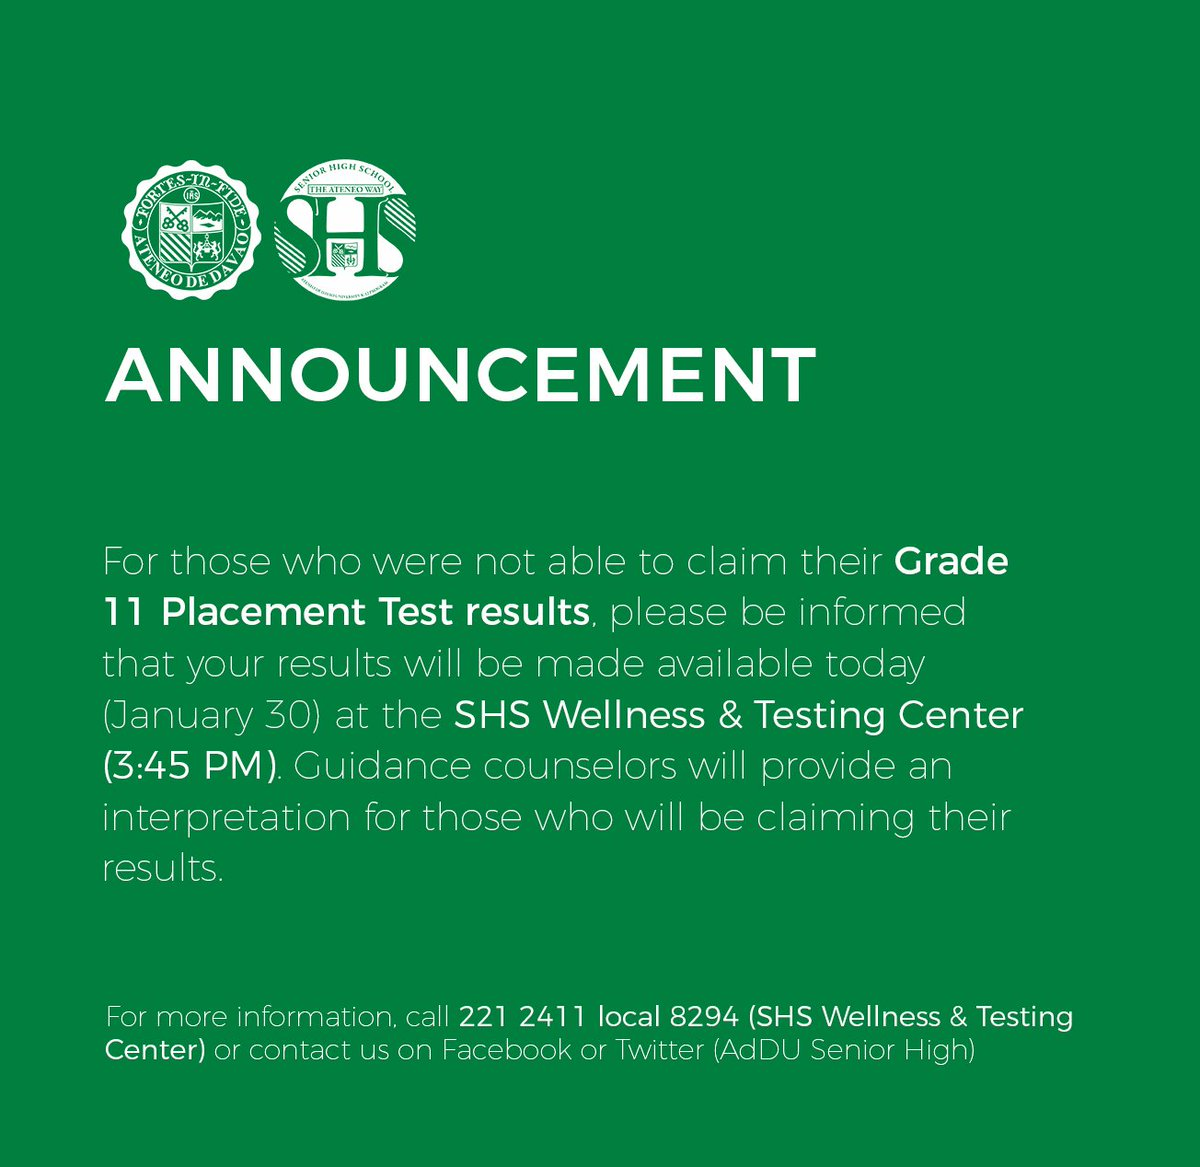 82f9a5904d ... may claim it at the SHS Wellness   Testing Center this afternoon. Your  guidance counselors will also provide you with an interpretation of the  results.